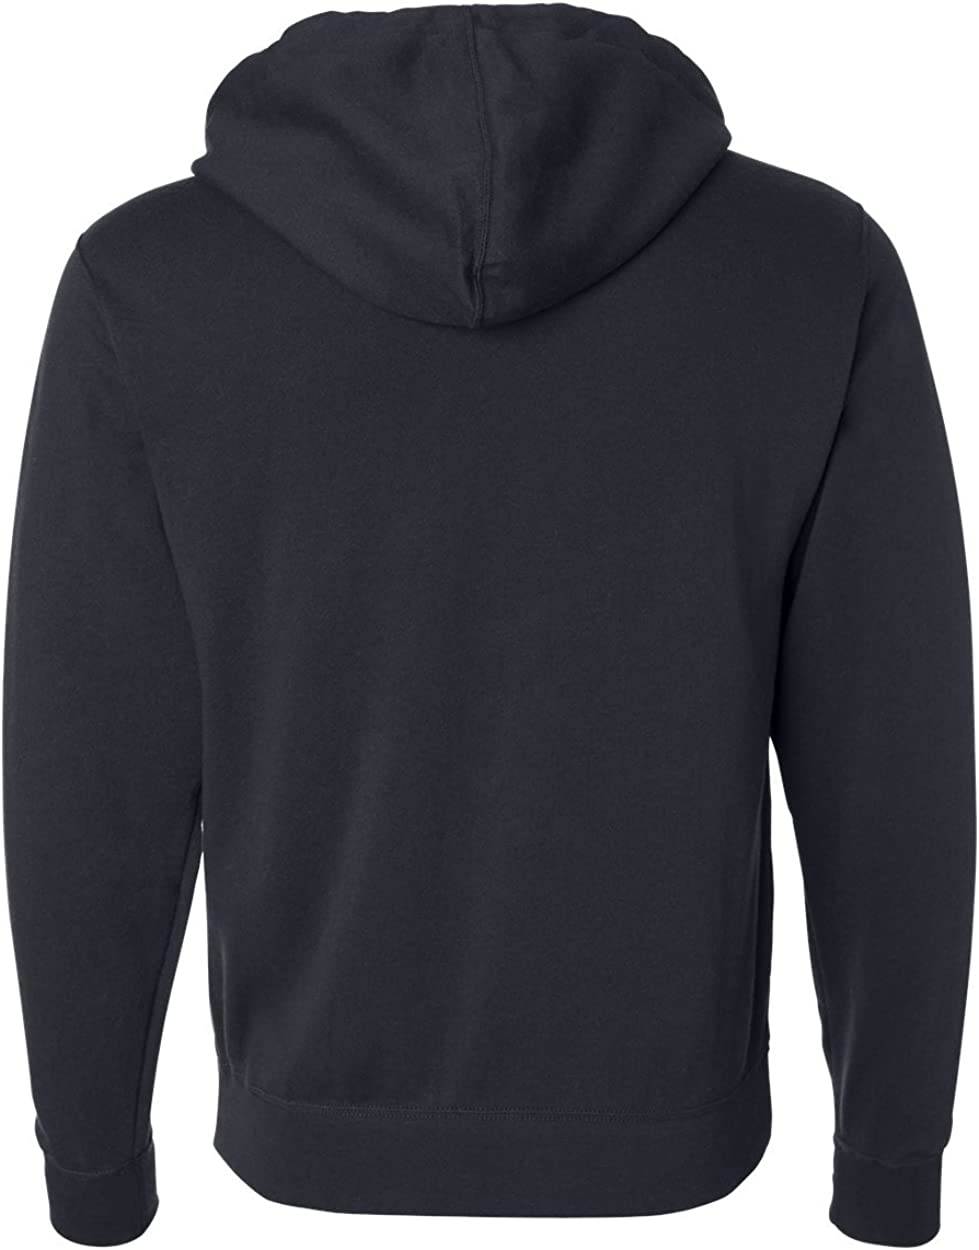 Independent Trading Co ITC Mens Hooded Sweatshirt AFX4000